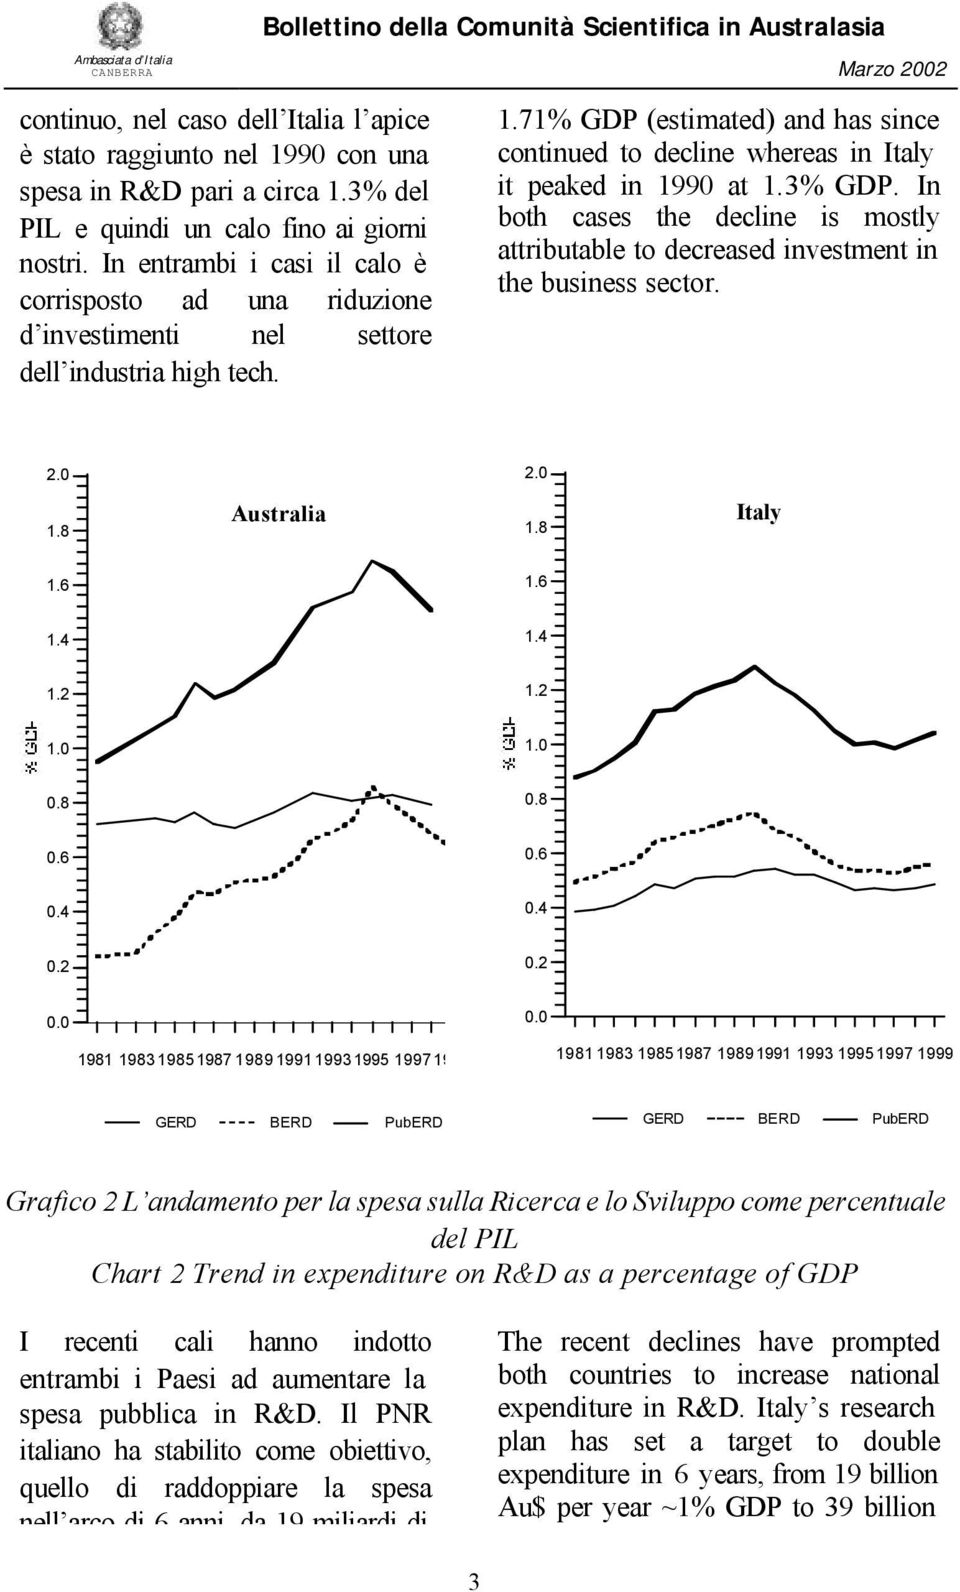 71% GDP (estimated) and has since continued to decline whereas in Italy it peaked in 1990 at 1.3% GDP. In both cases the decline is mostly attributable to decreased investment in the business sector.